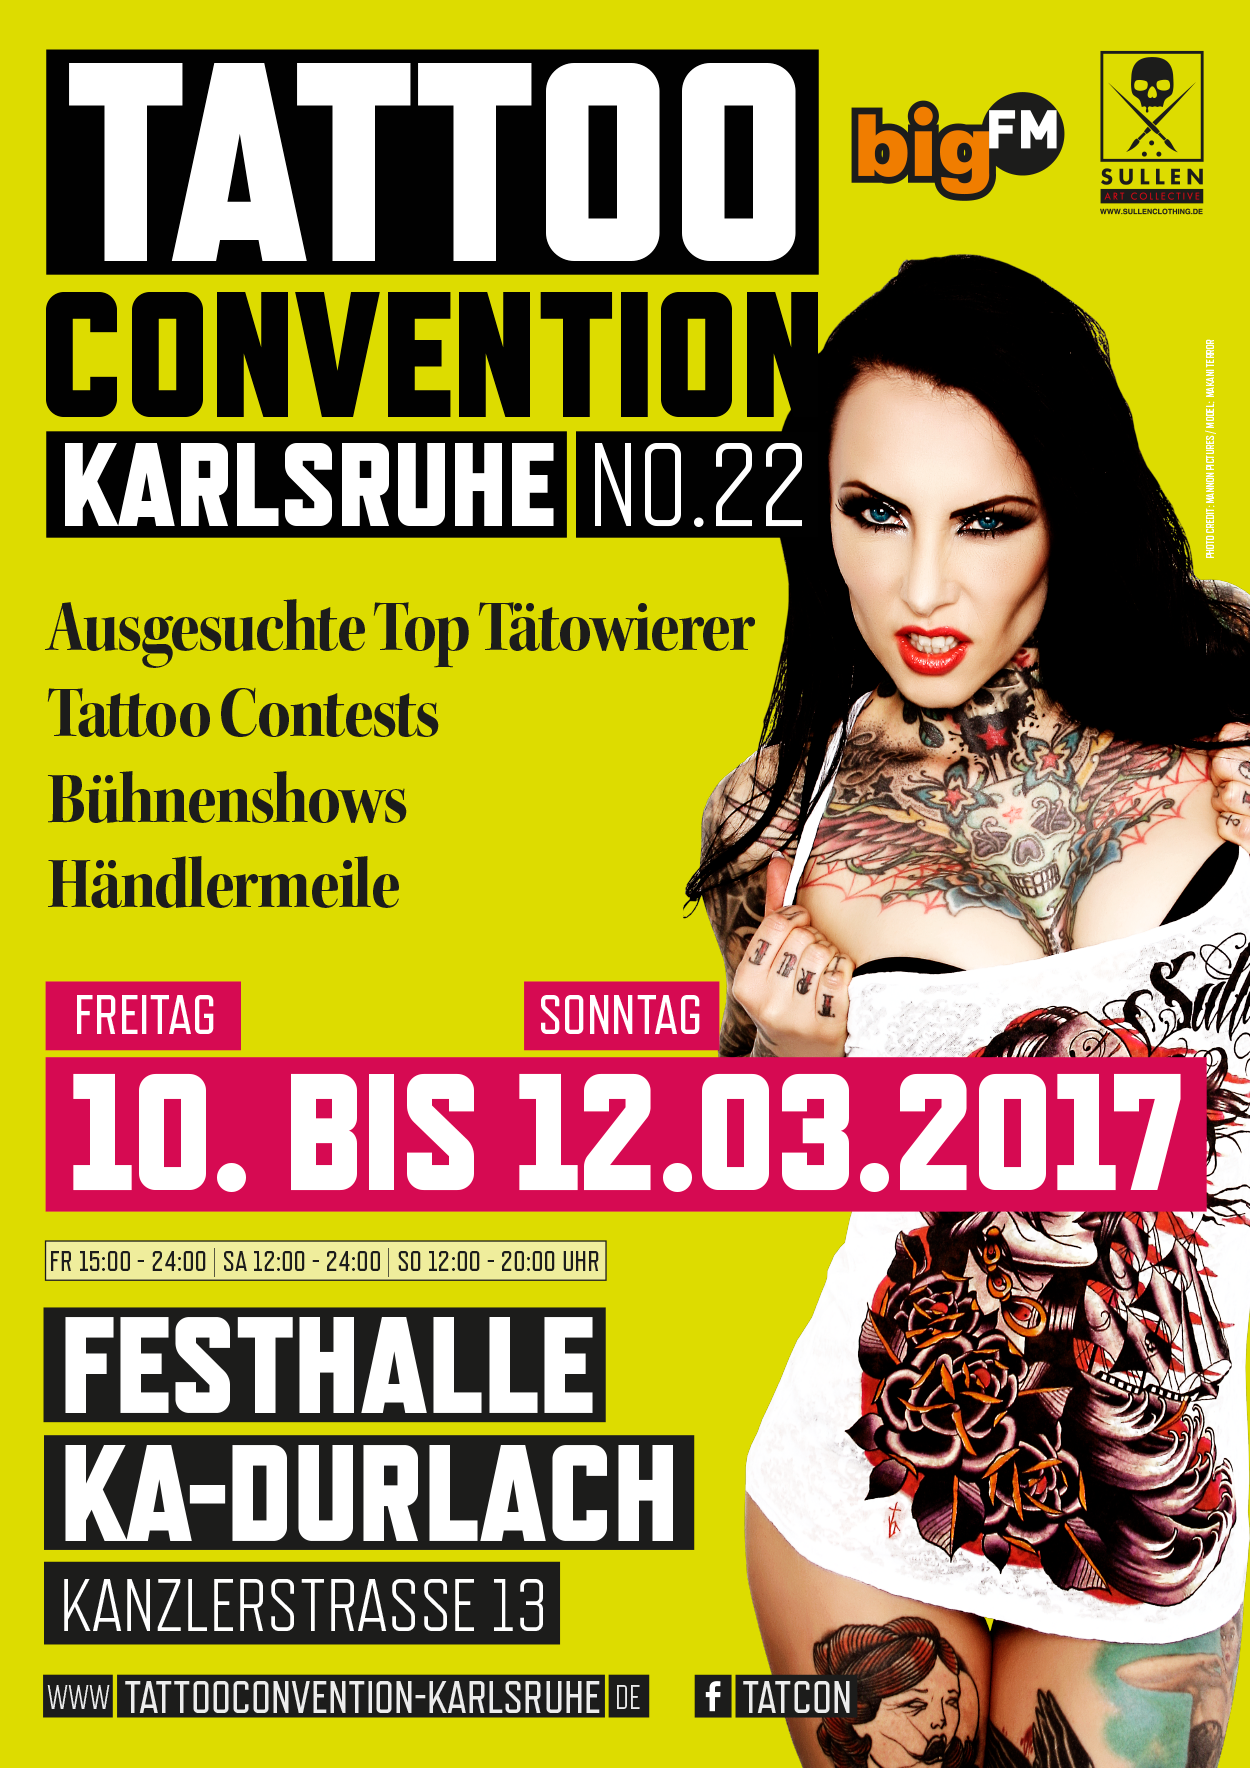 Tattooconvention Karlsruhe 2017 Flyer